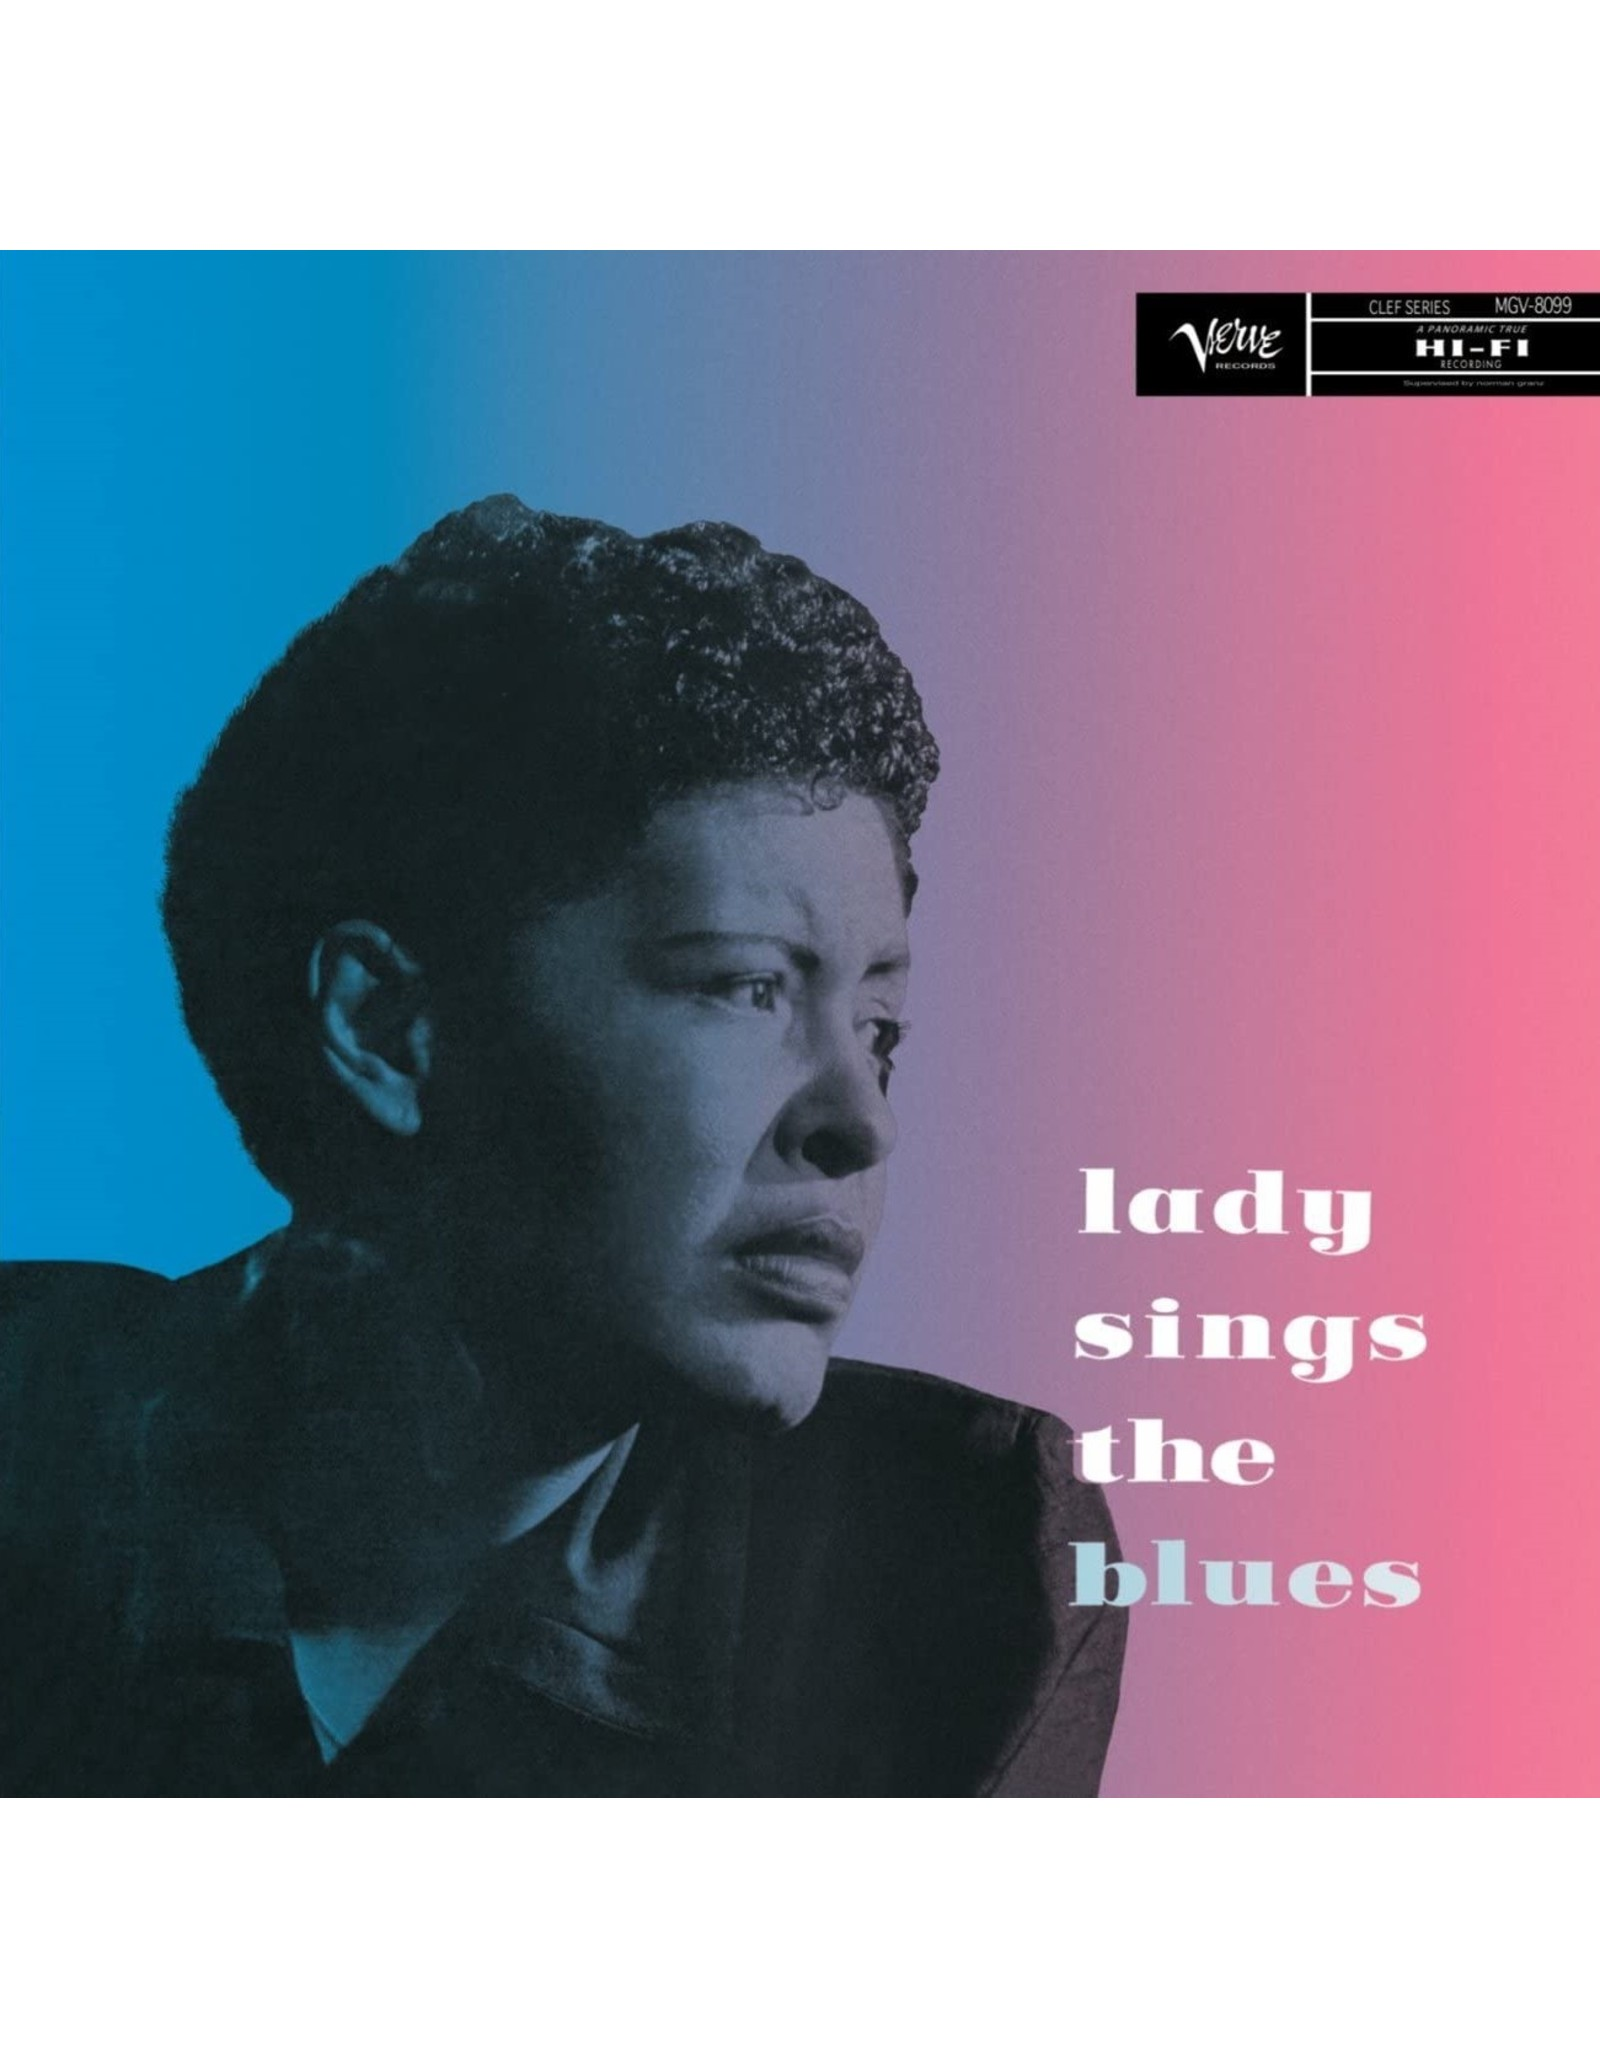 Billie Holiday - Lady Sings The Blues (Abbey Road Remaster)